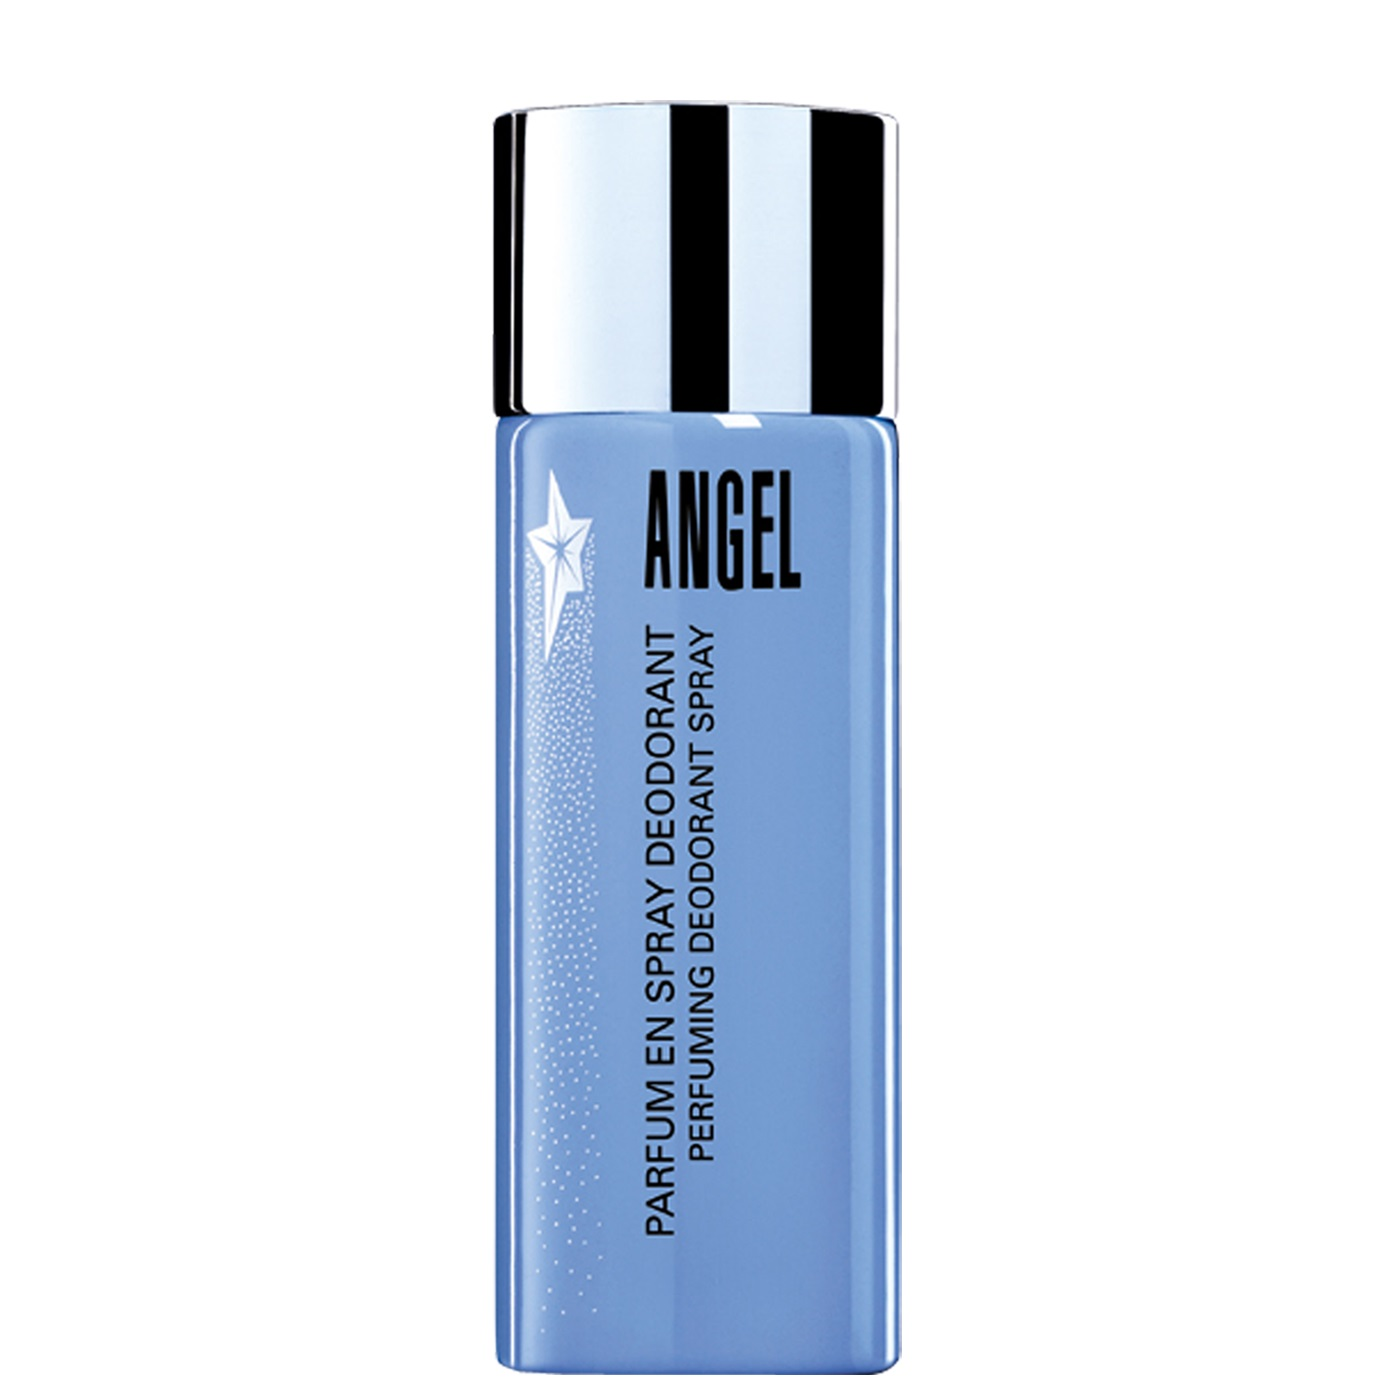 PROFUMO THIERRY MUGLER ANGEL DONNA DEO SPRAY ML 100